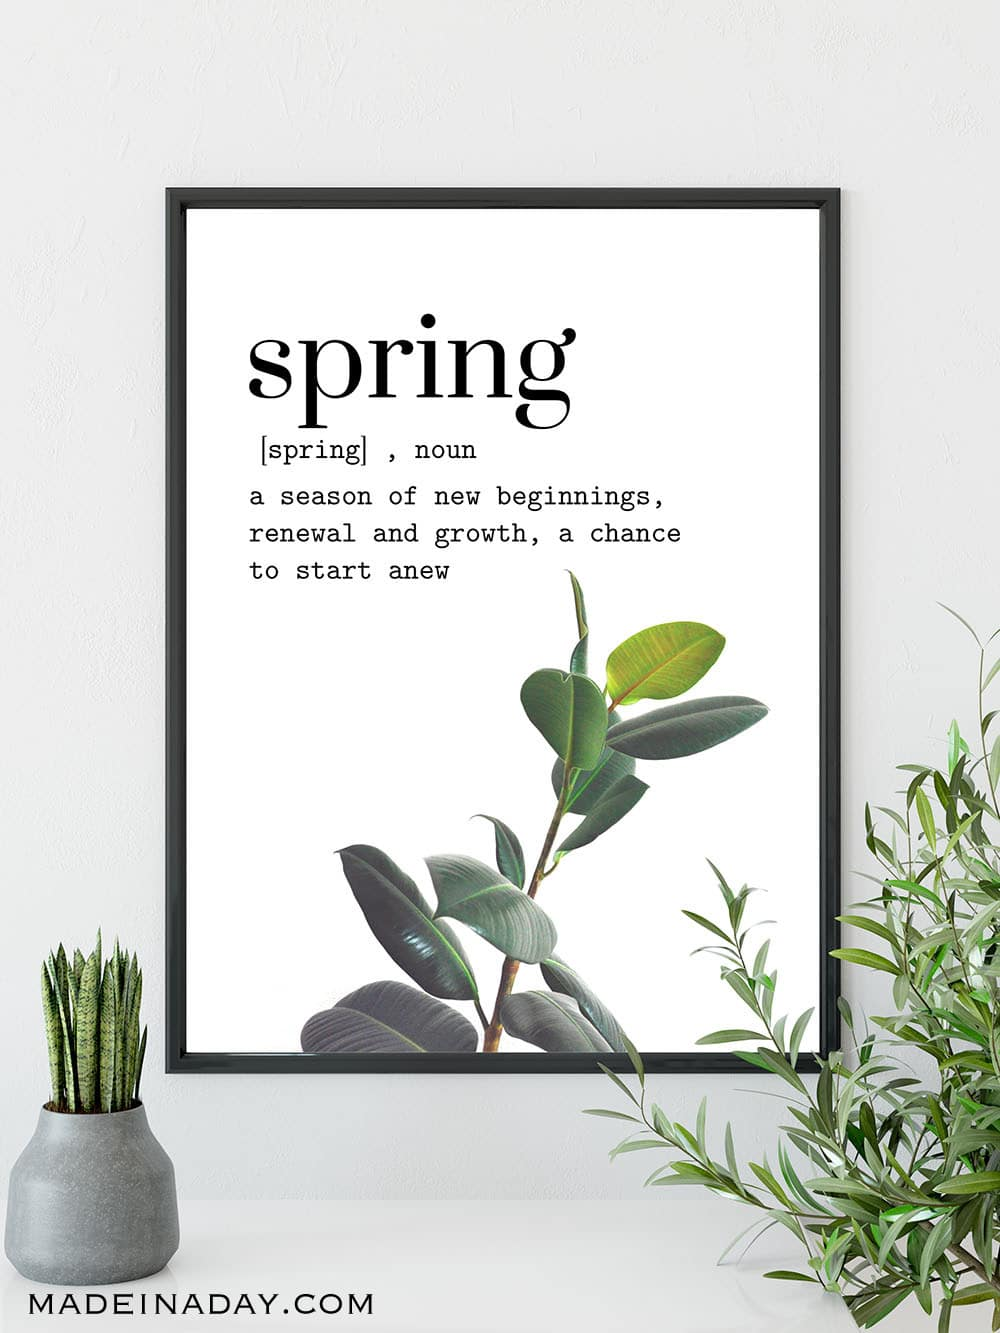 Spring definition rubber plant wall art, spring printable wall art,